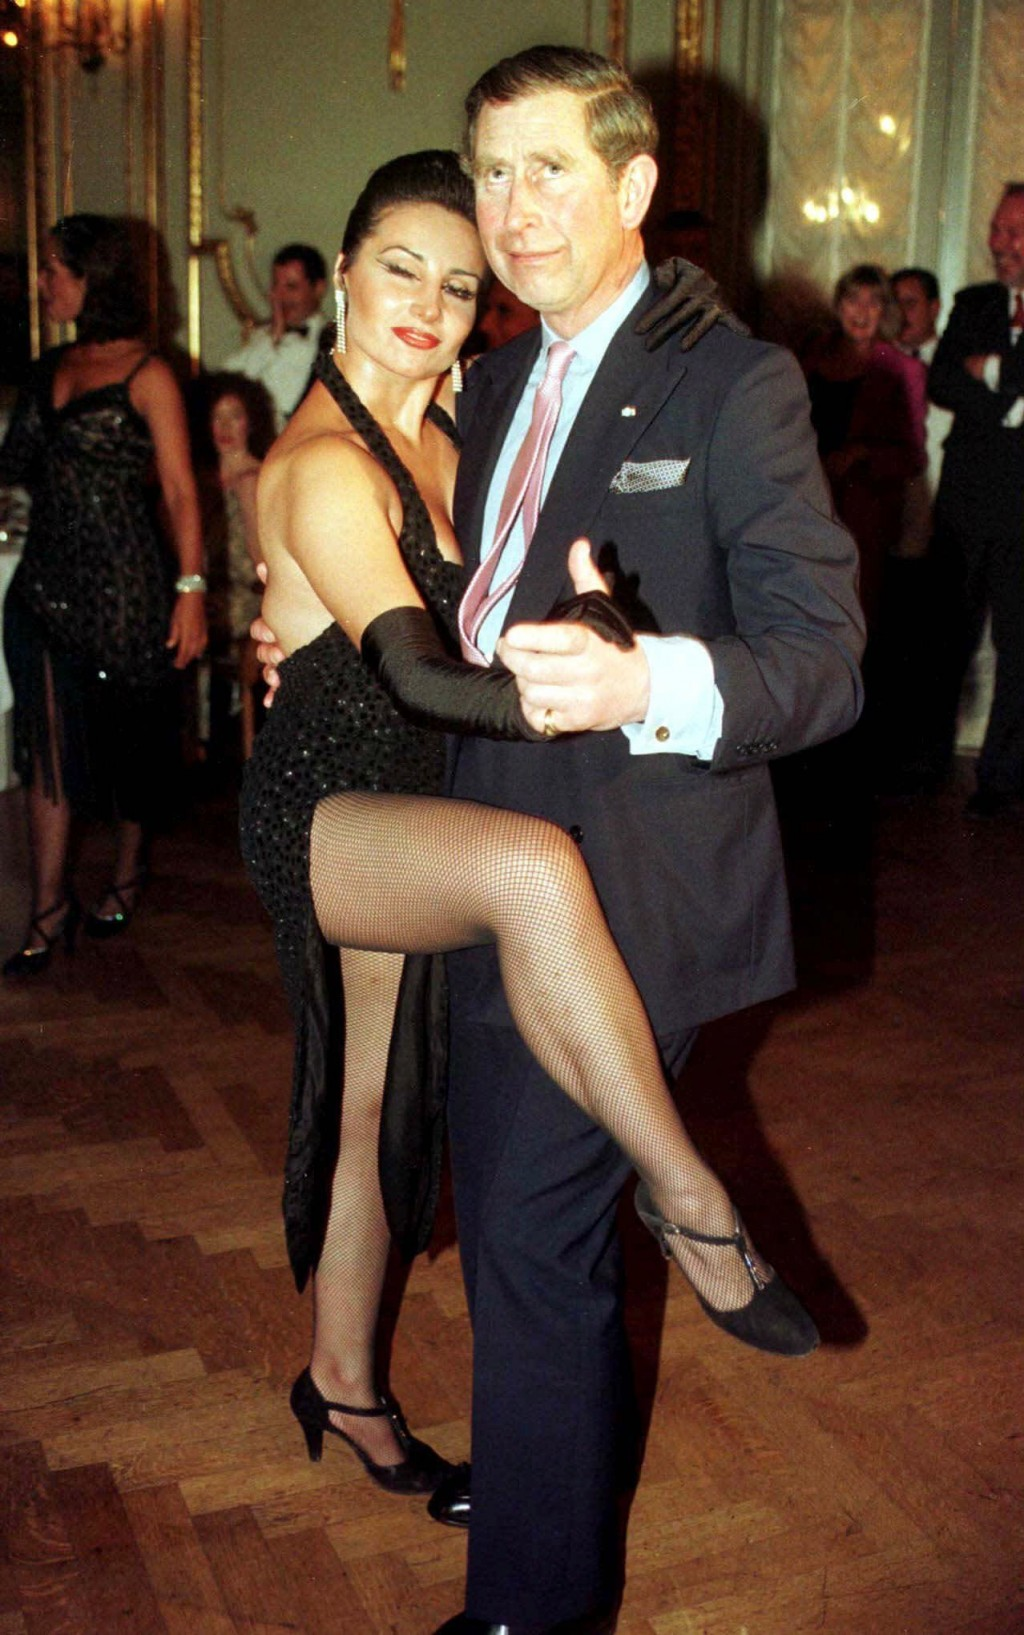 FILE - In this Tuesday March 9, 1999 file photo Britain's Prince Charles dances the tango with Adriana Vasile, at the Presidents Dinner in Buenos Aire